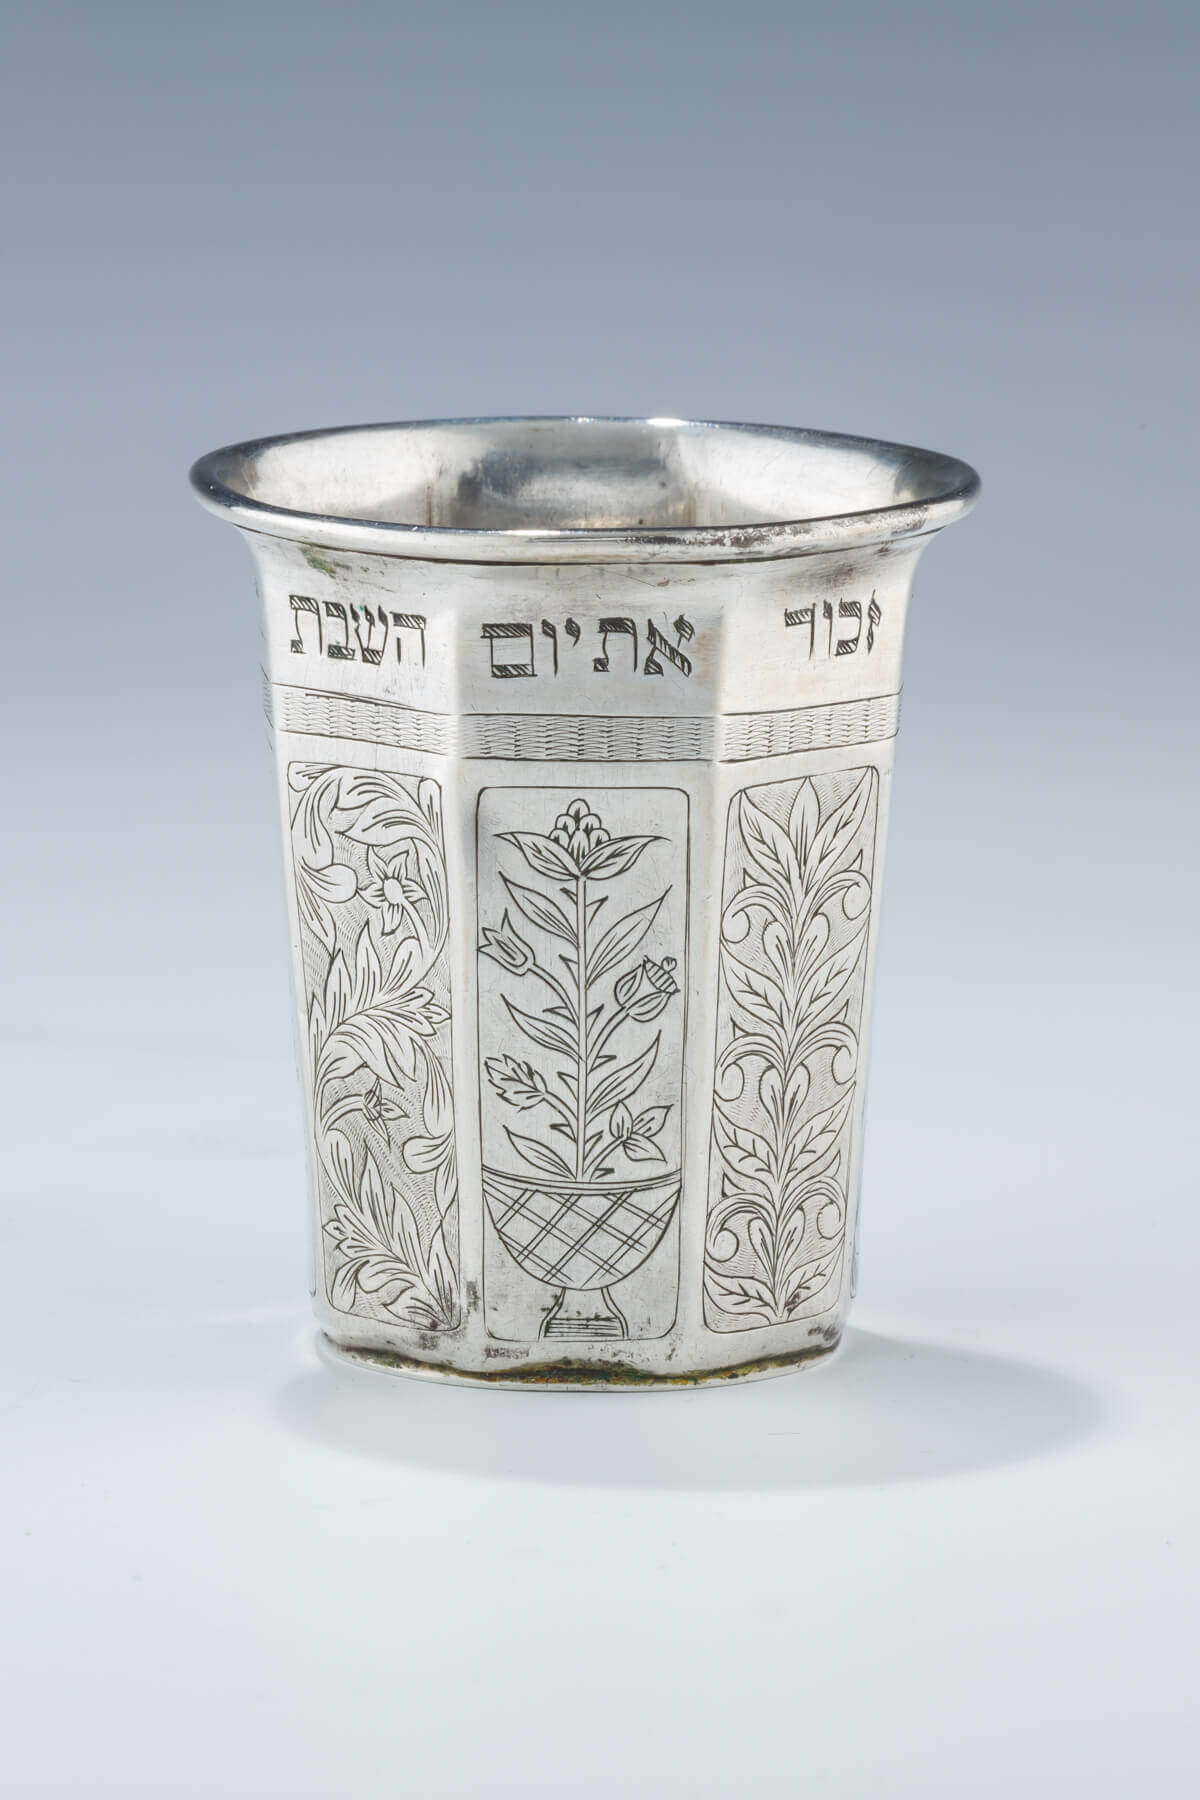 058. A RARE EIGHT SIDED KIDDUSH CUP